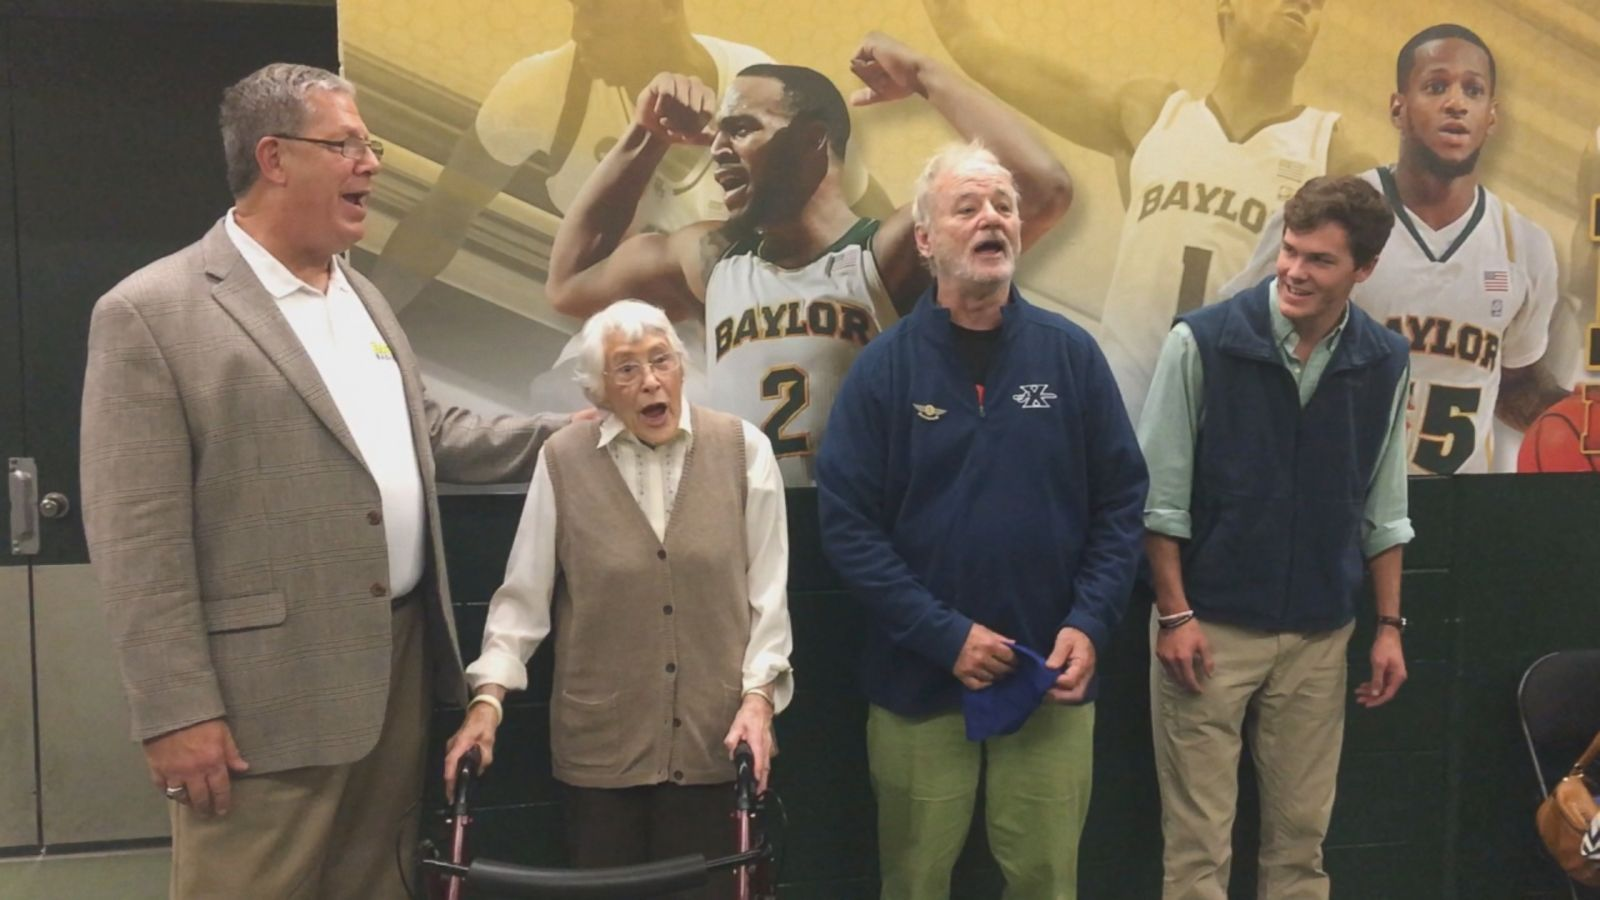 """The actor sang """"Happy Birthday"""" to Maryellen Hook Wible after the Baylor vs Xavier men's basketball game in Waco, Texas, on Saturday."""